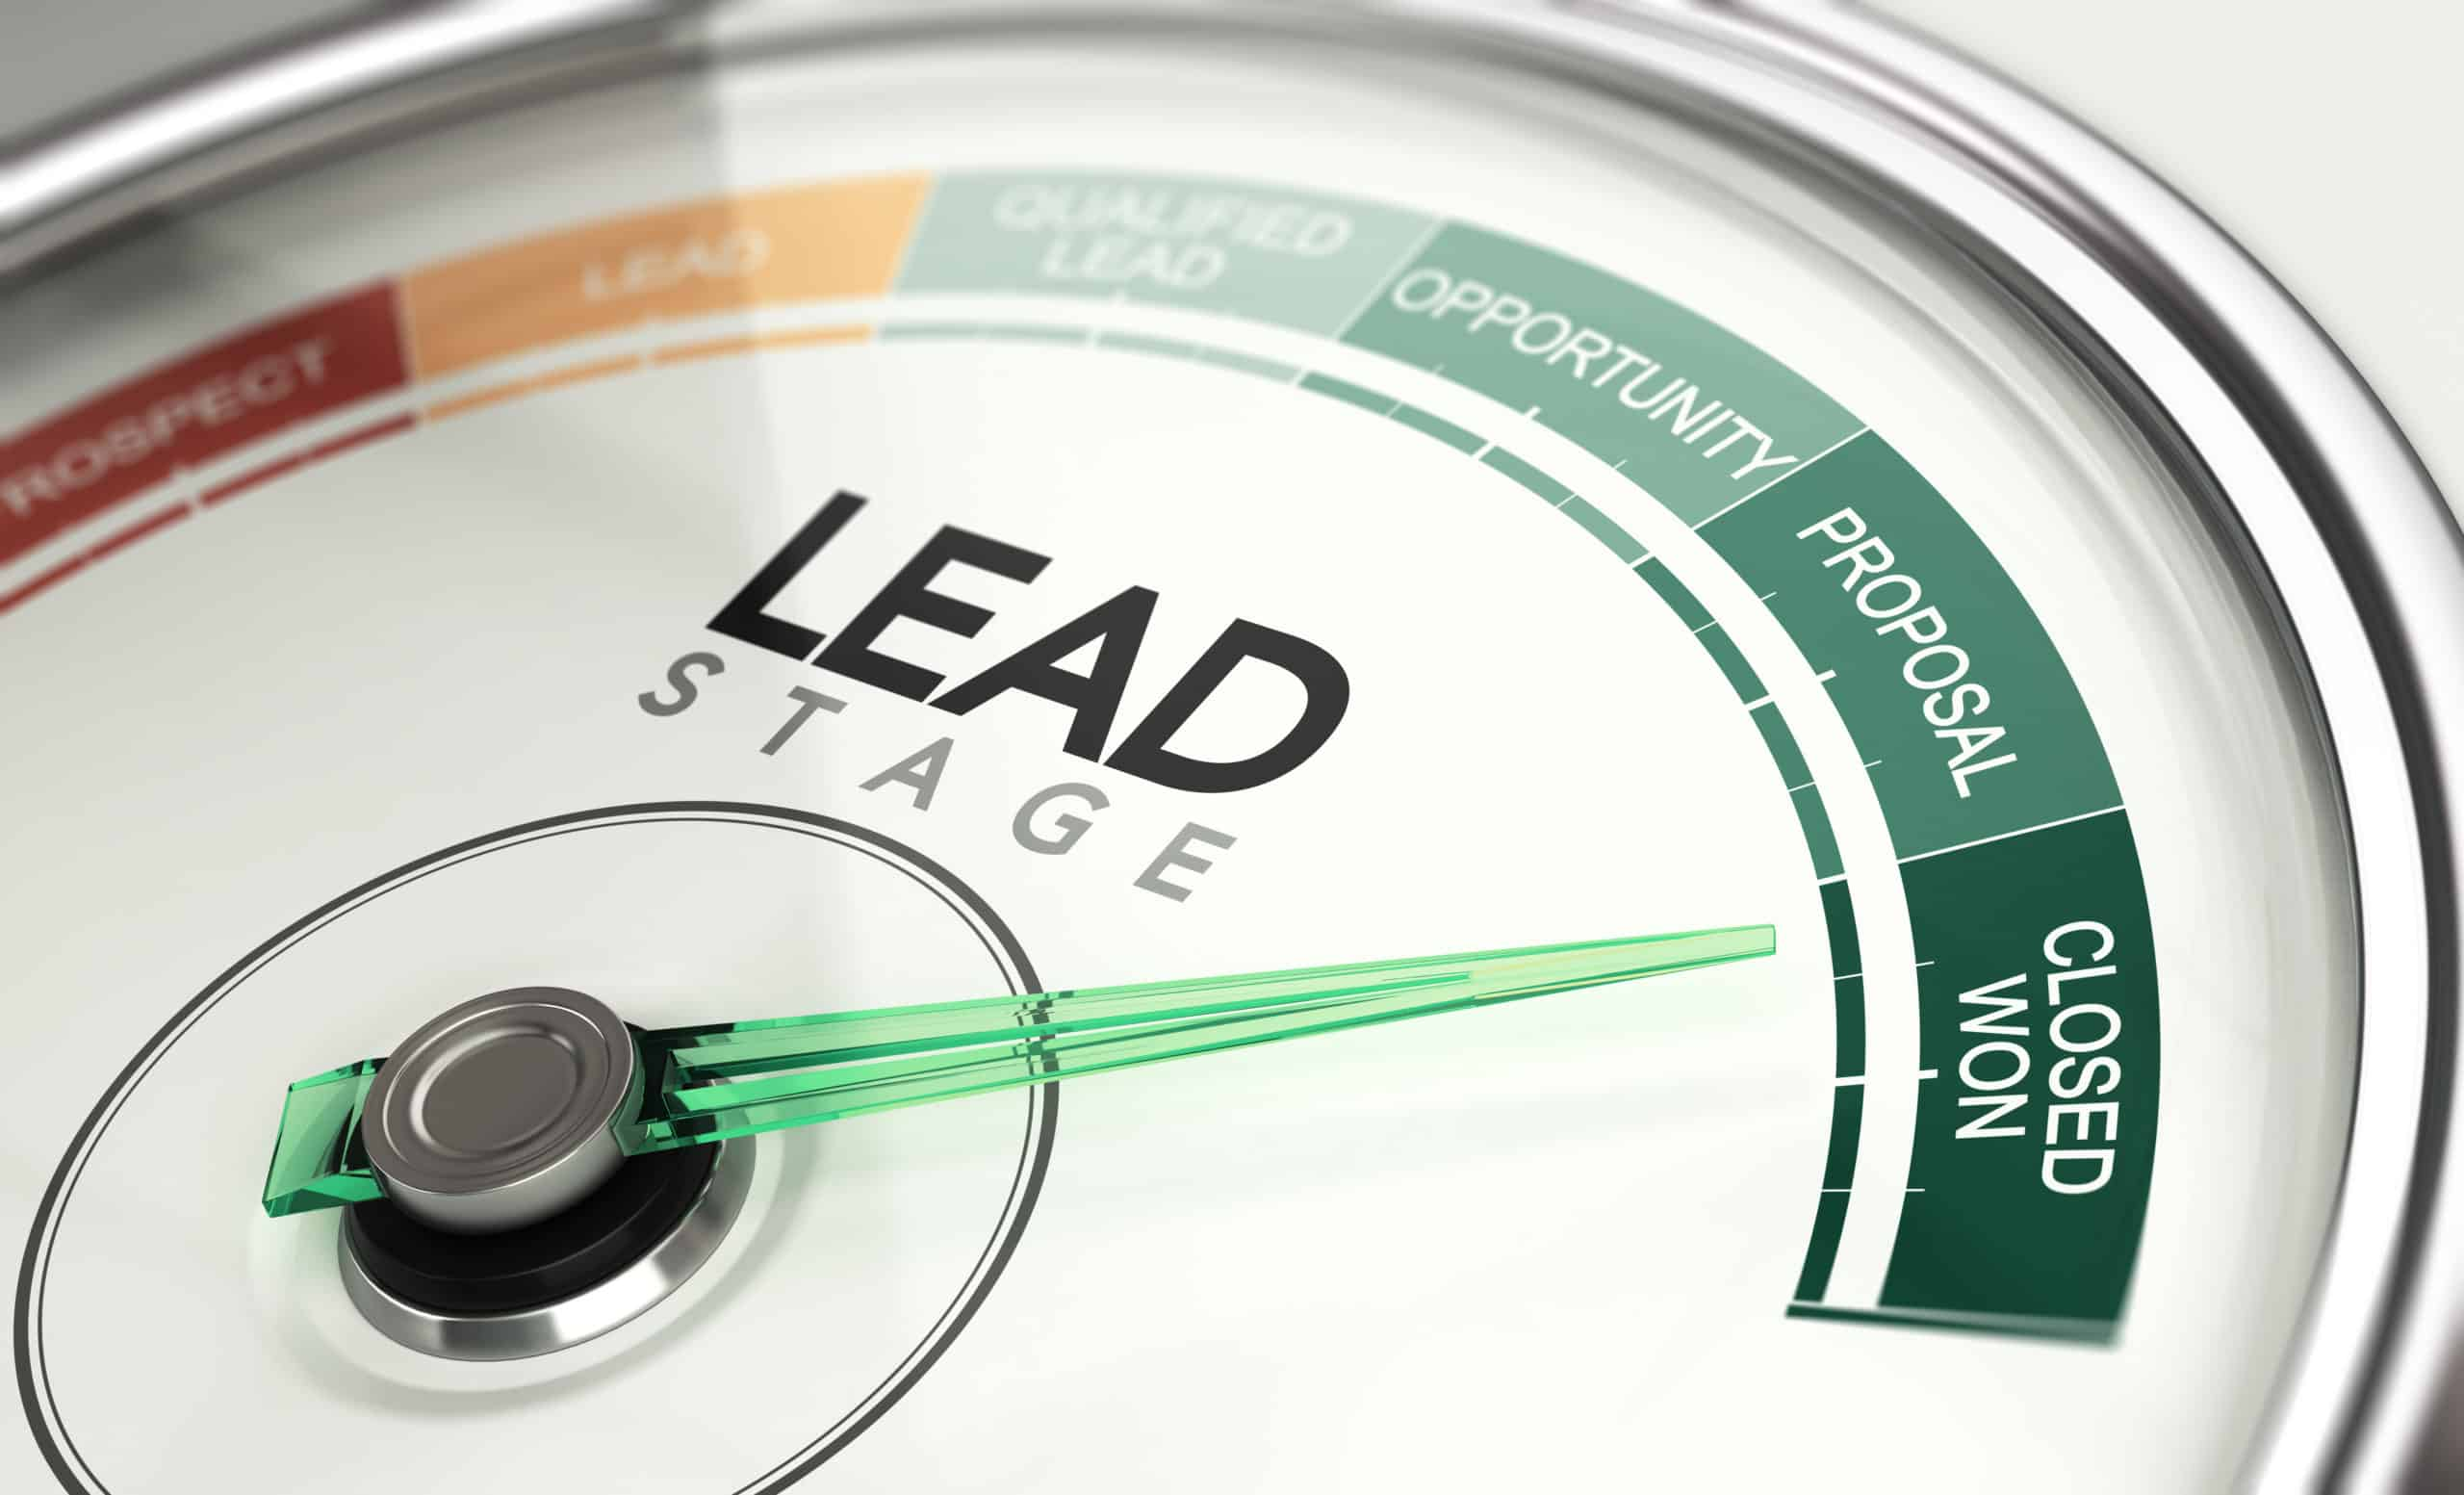 The Marketer's Guide to Getting Leads Through Sales Automation